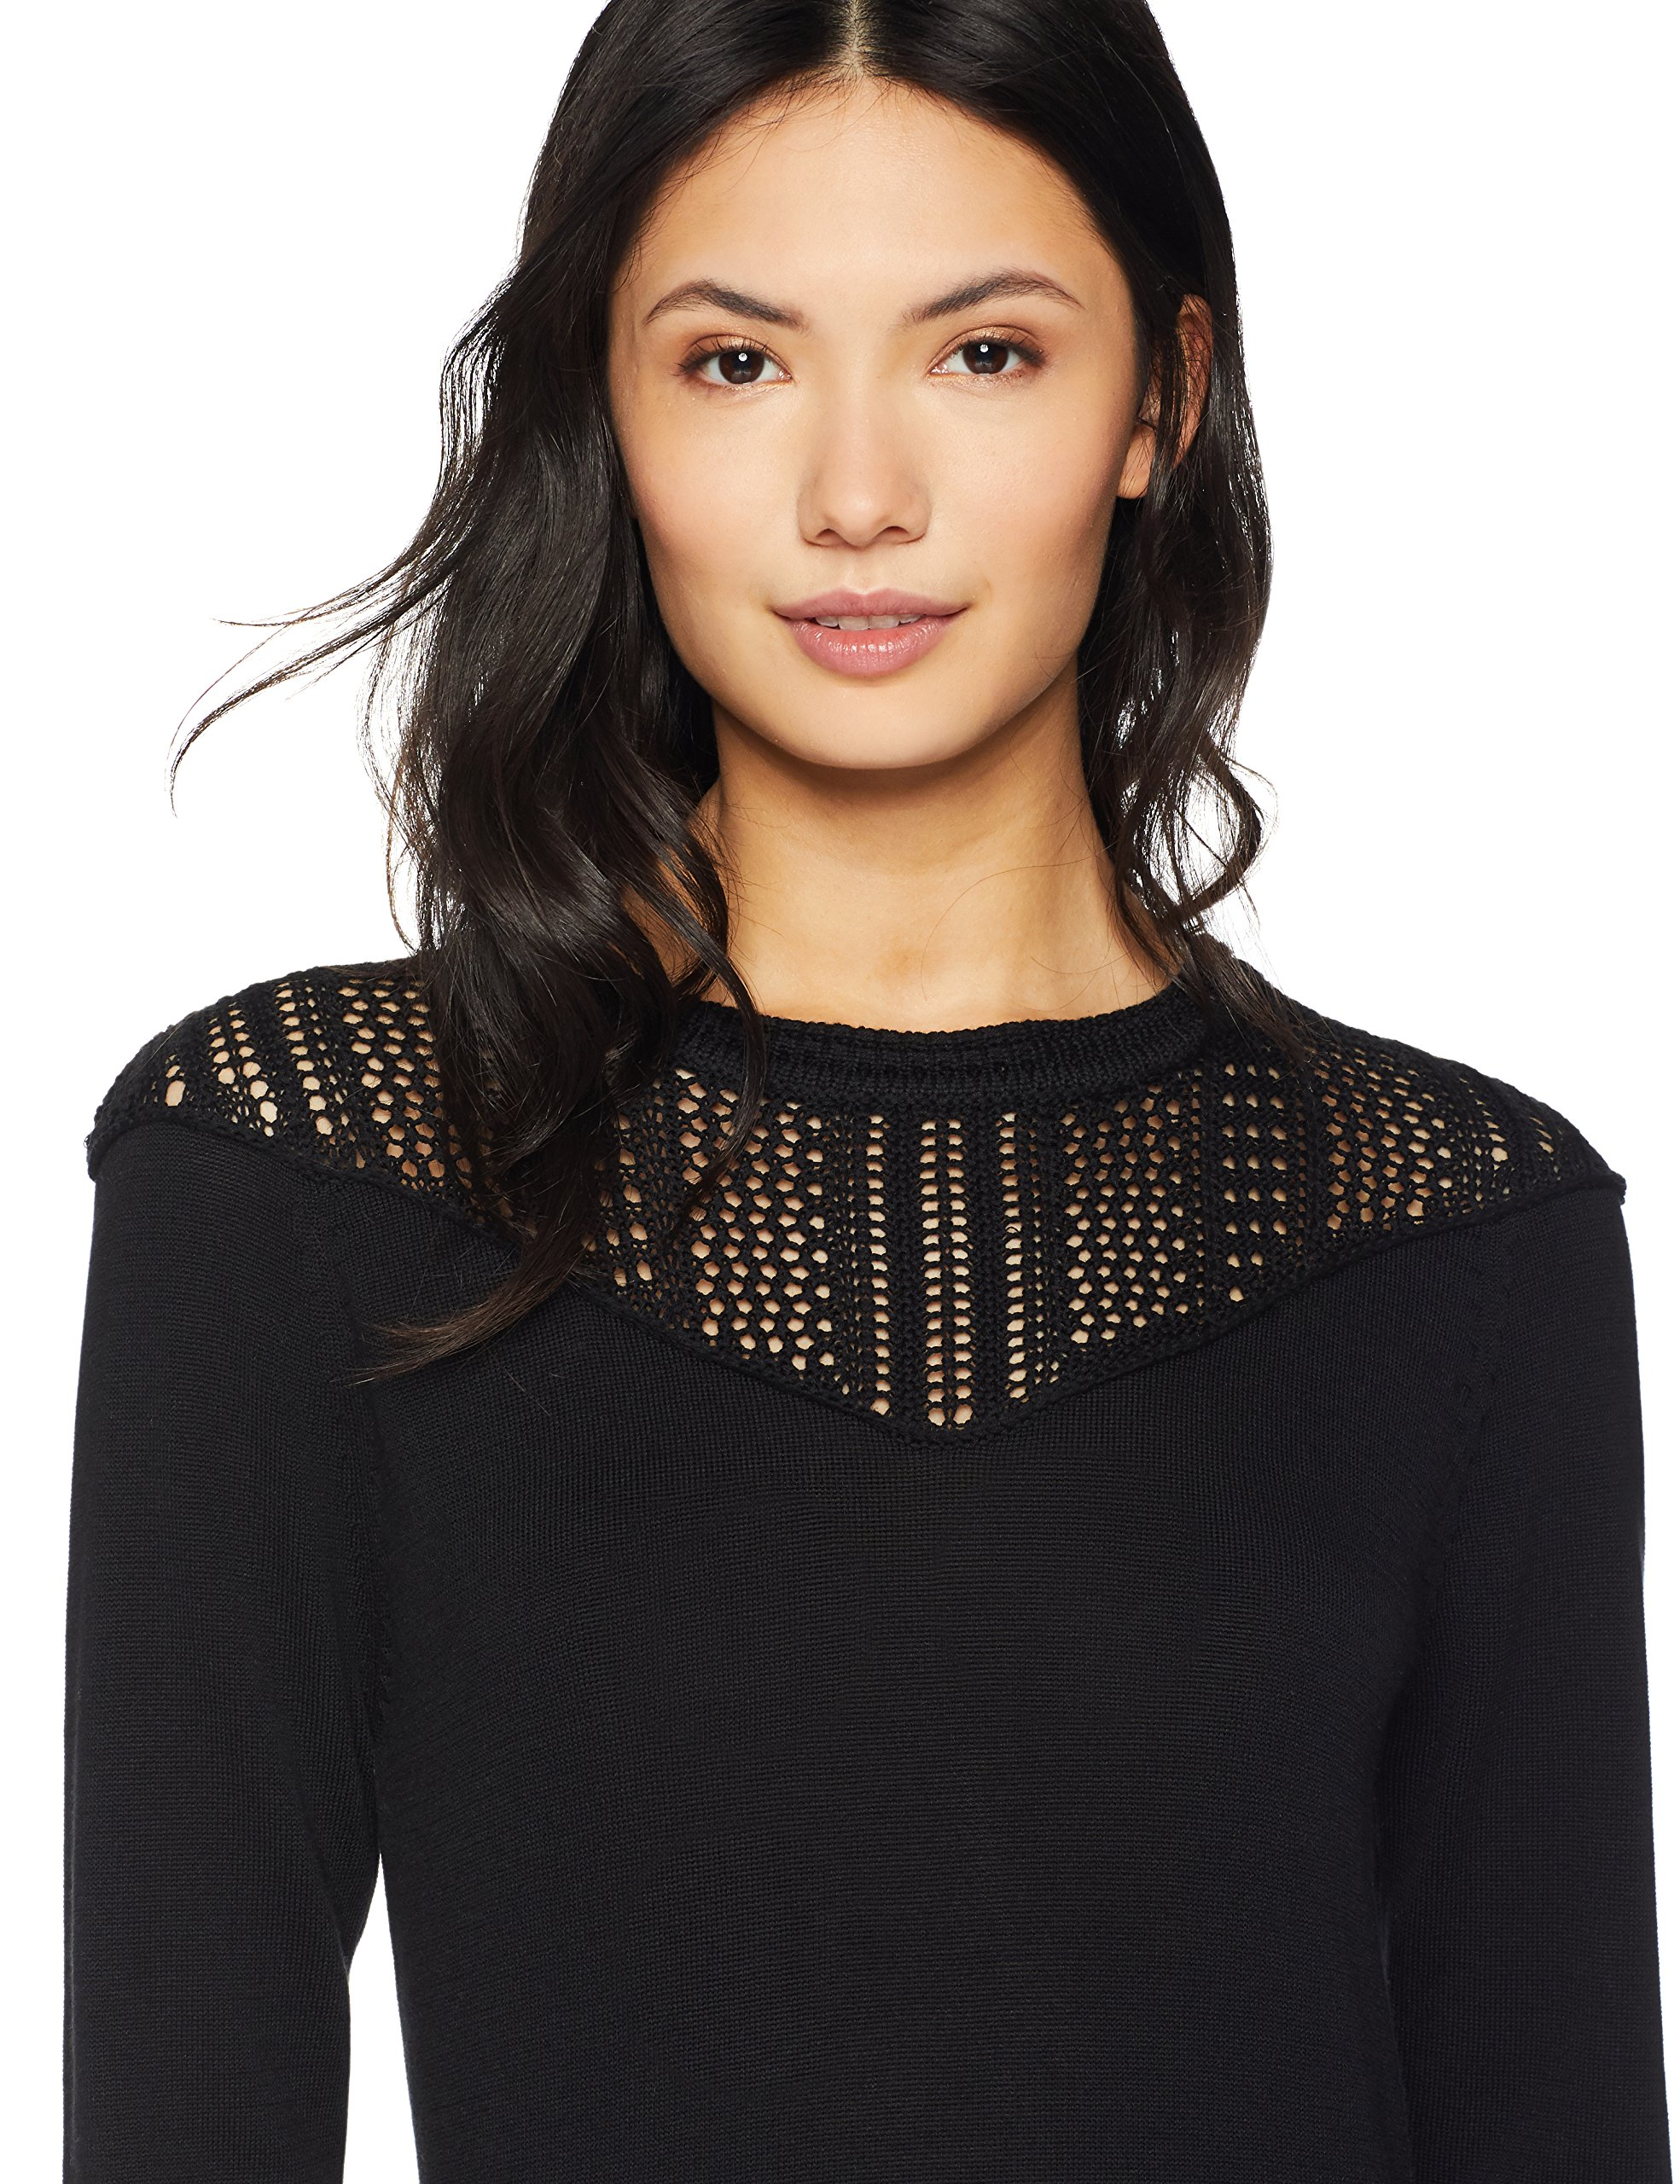 Cable Stitch Women's Pointelle Inset Sweater Black Large by Cable Stitch (Image #4)